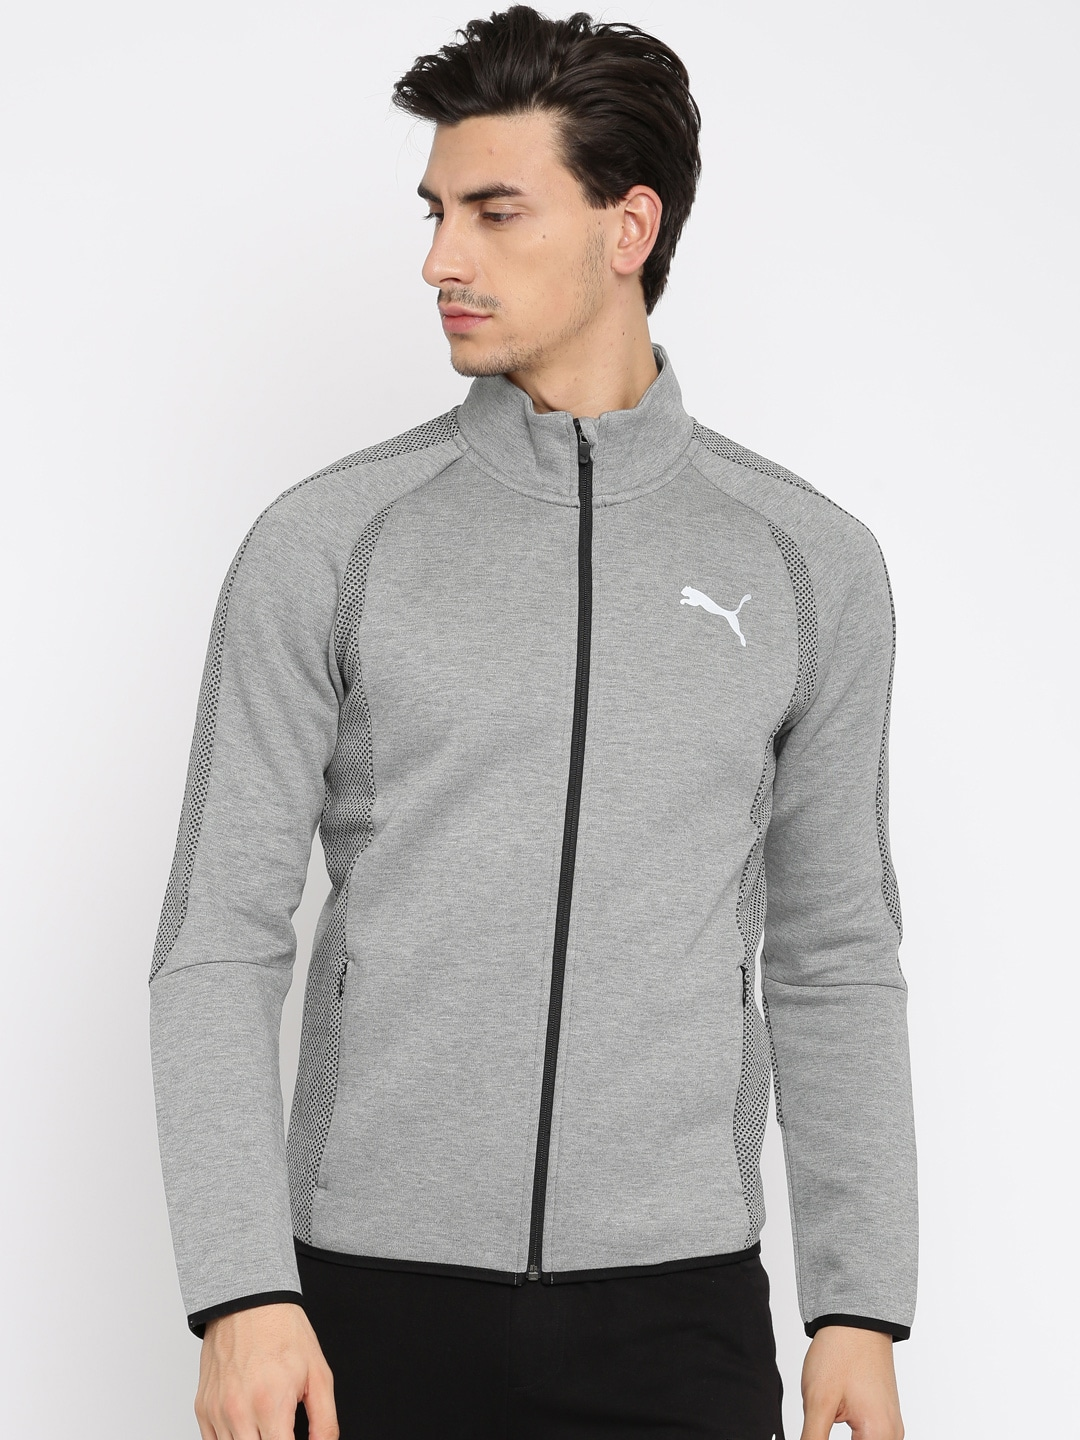 2aefed92317c Sports Jackets - Buy Sports Jackets online in India